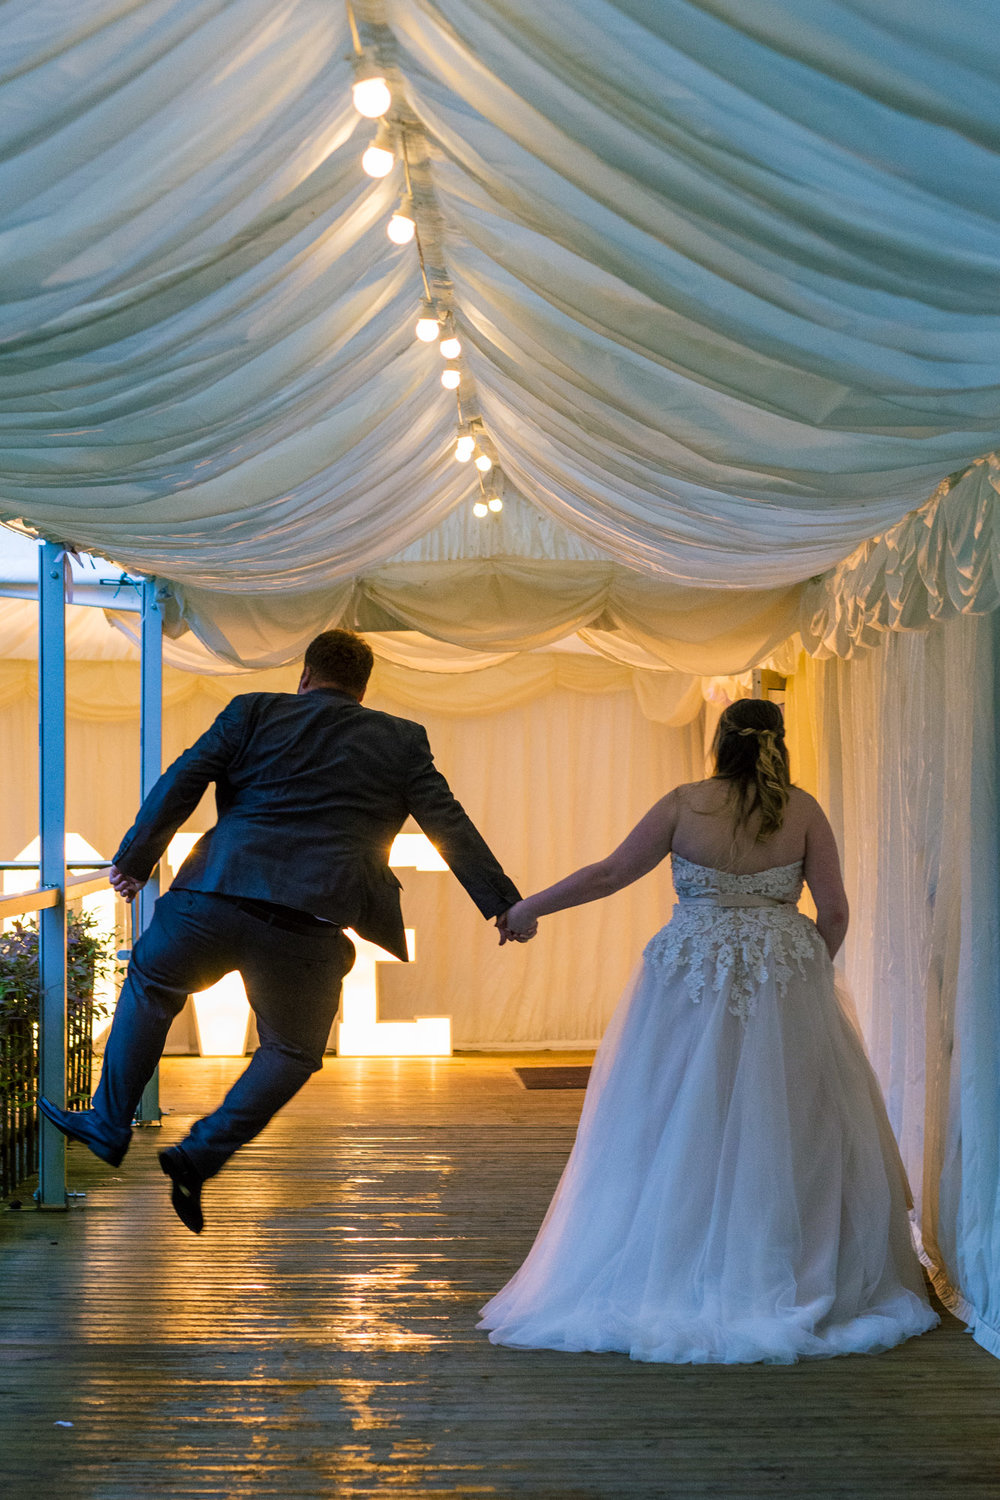 groom doing a cheeky move